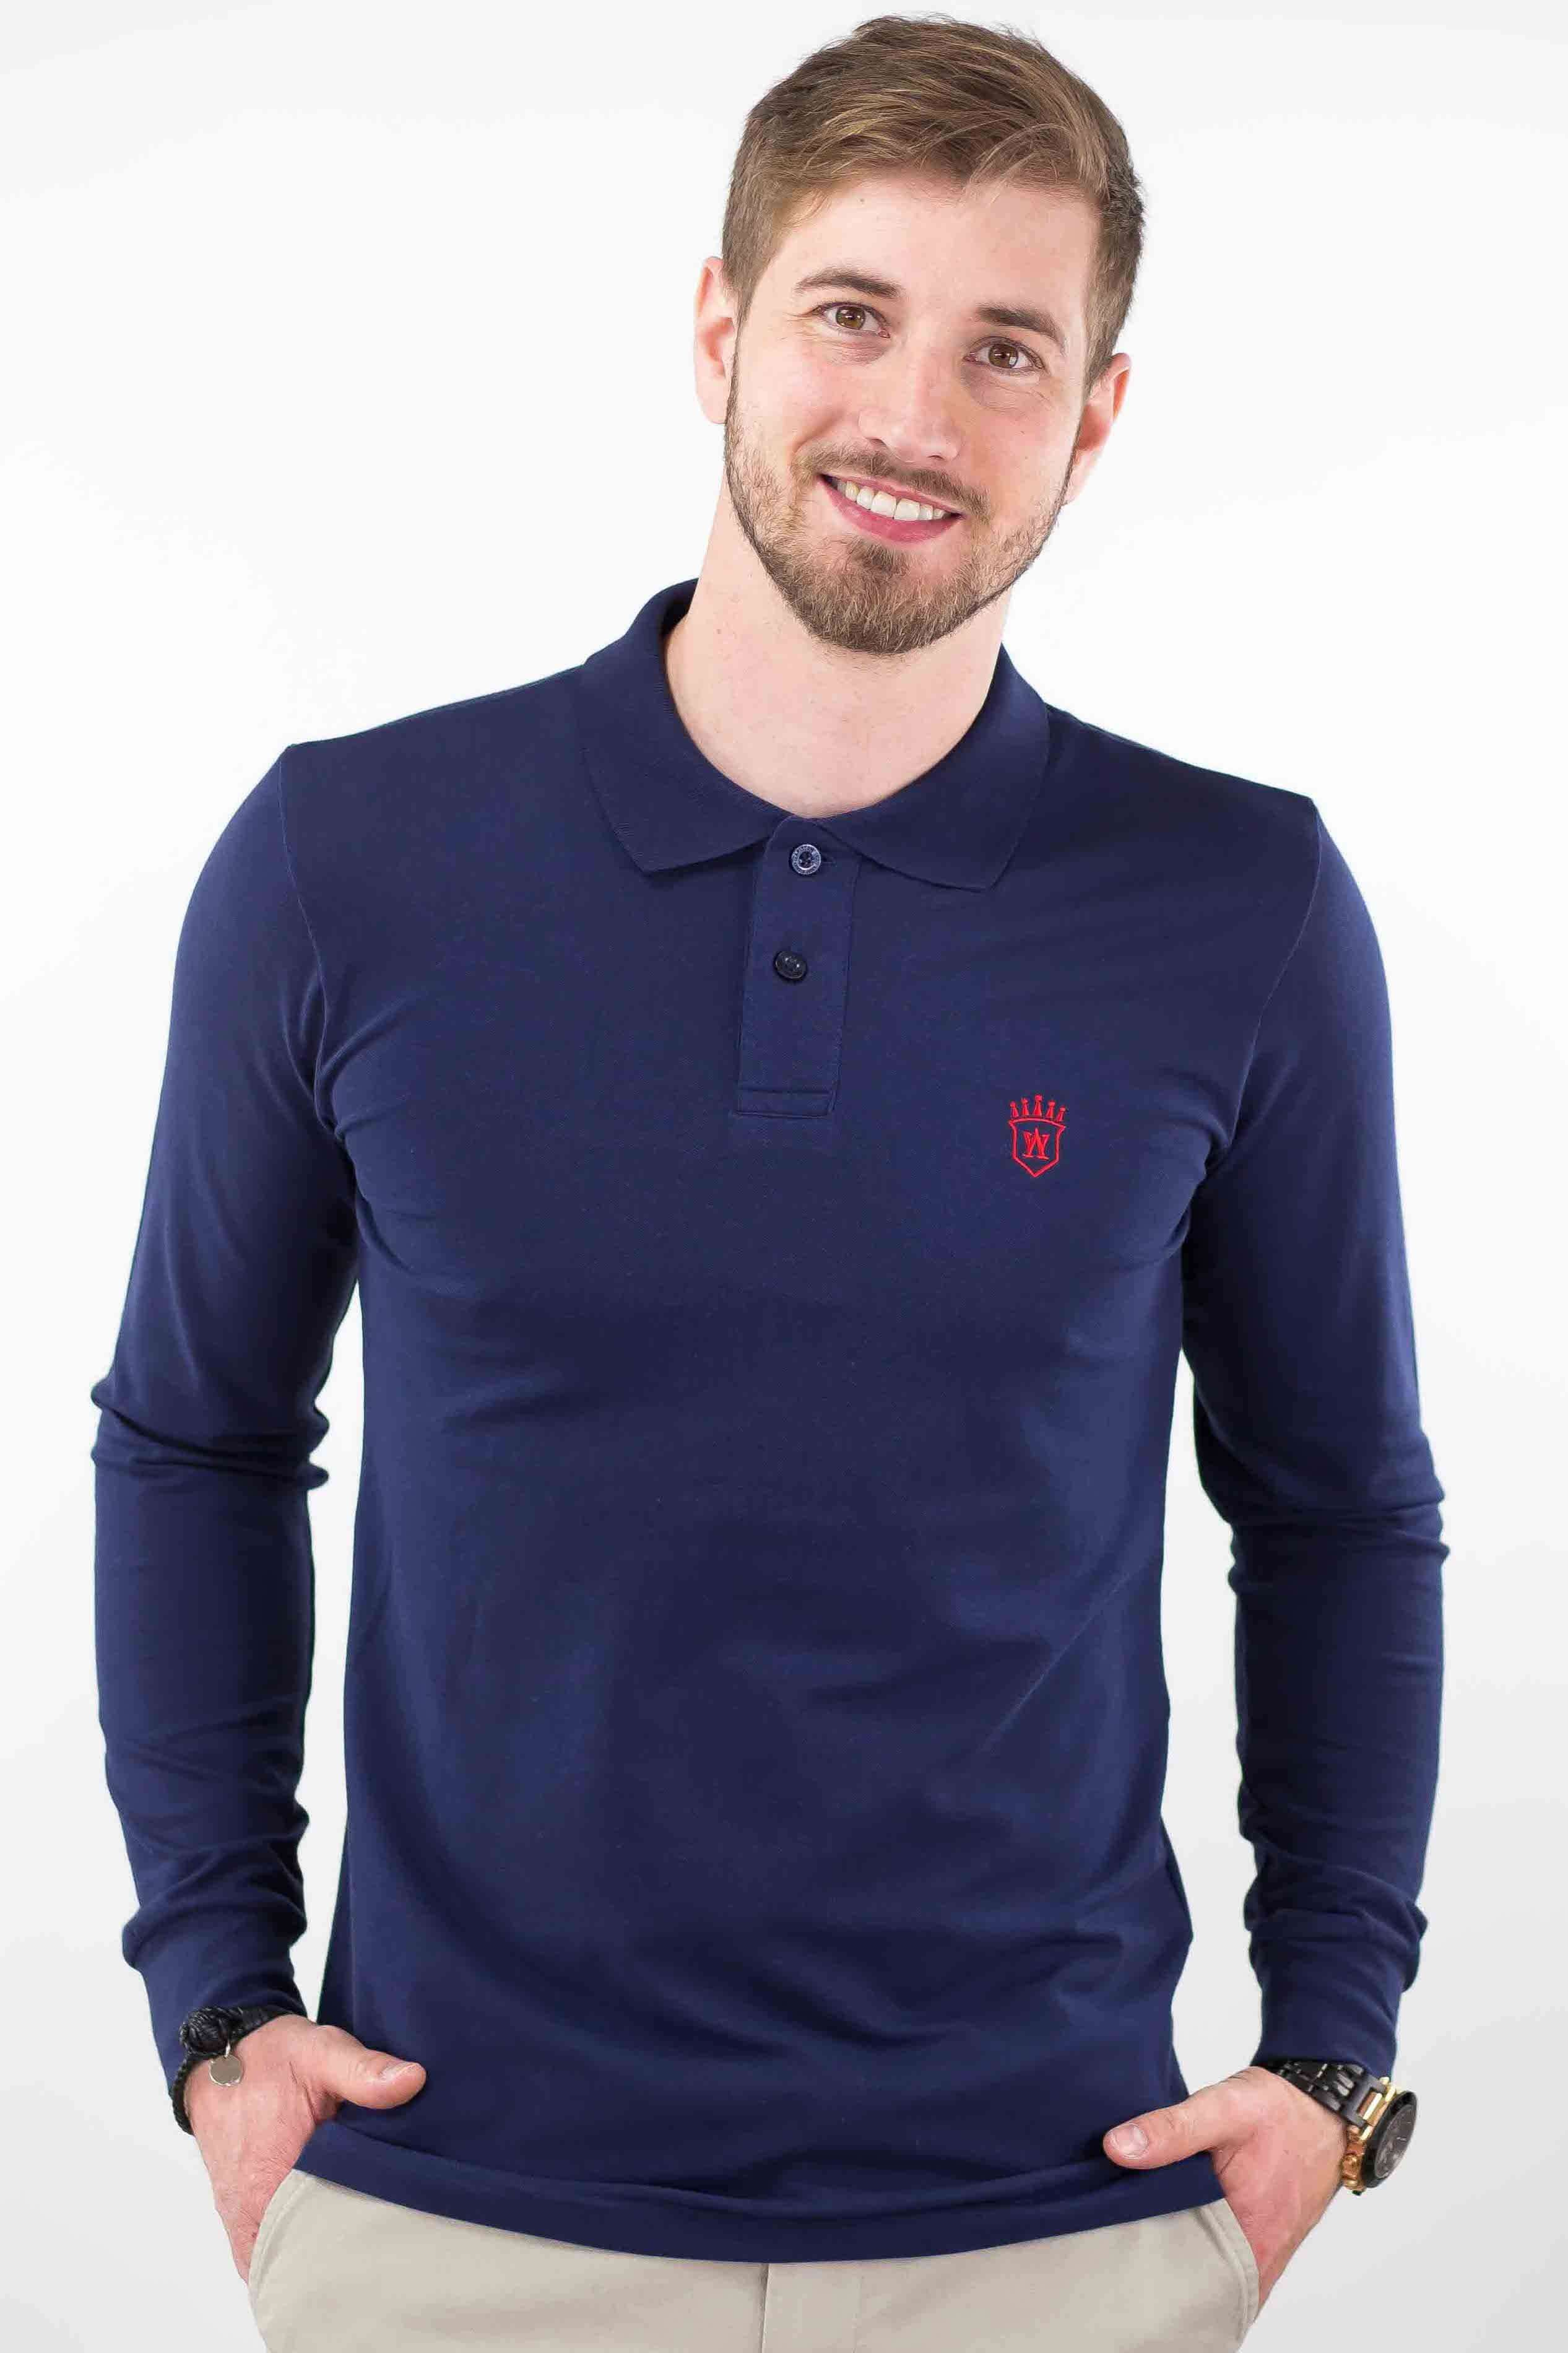 1026a7aed3 Polo bleu marine homme manches longues. Hover to zoom